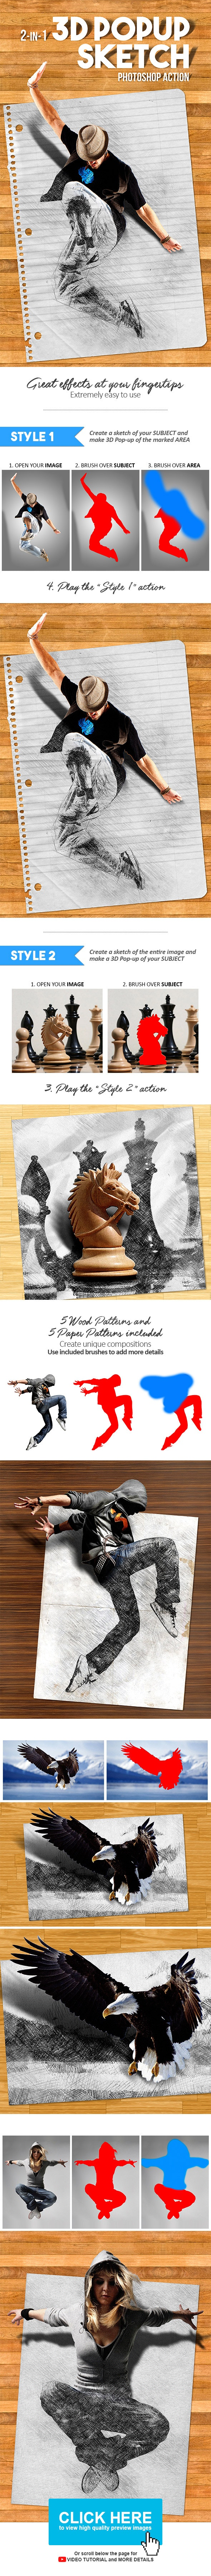 3D Popup Sketch Photoshop Action - Photo Effects Actions